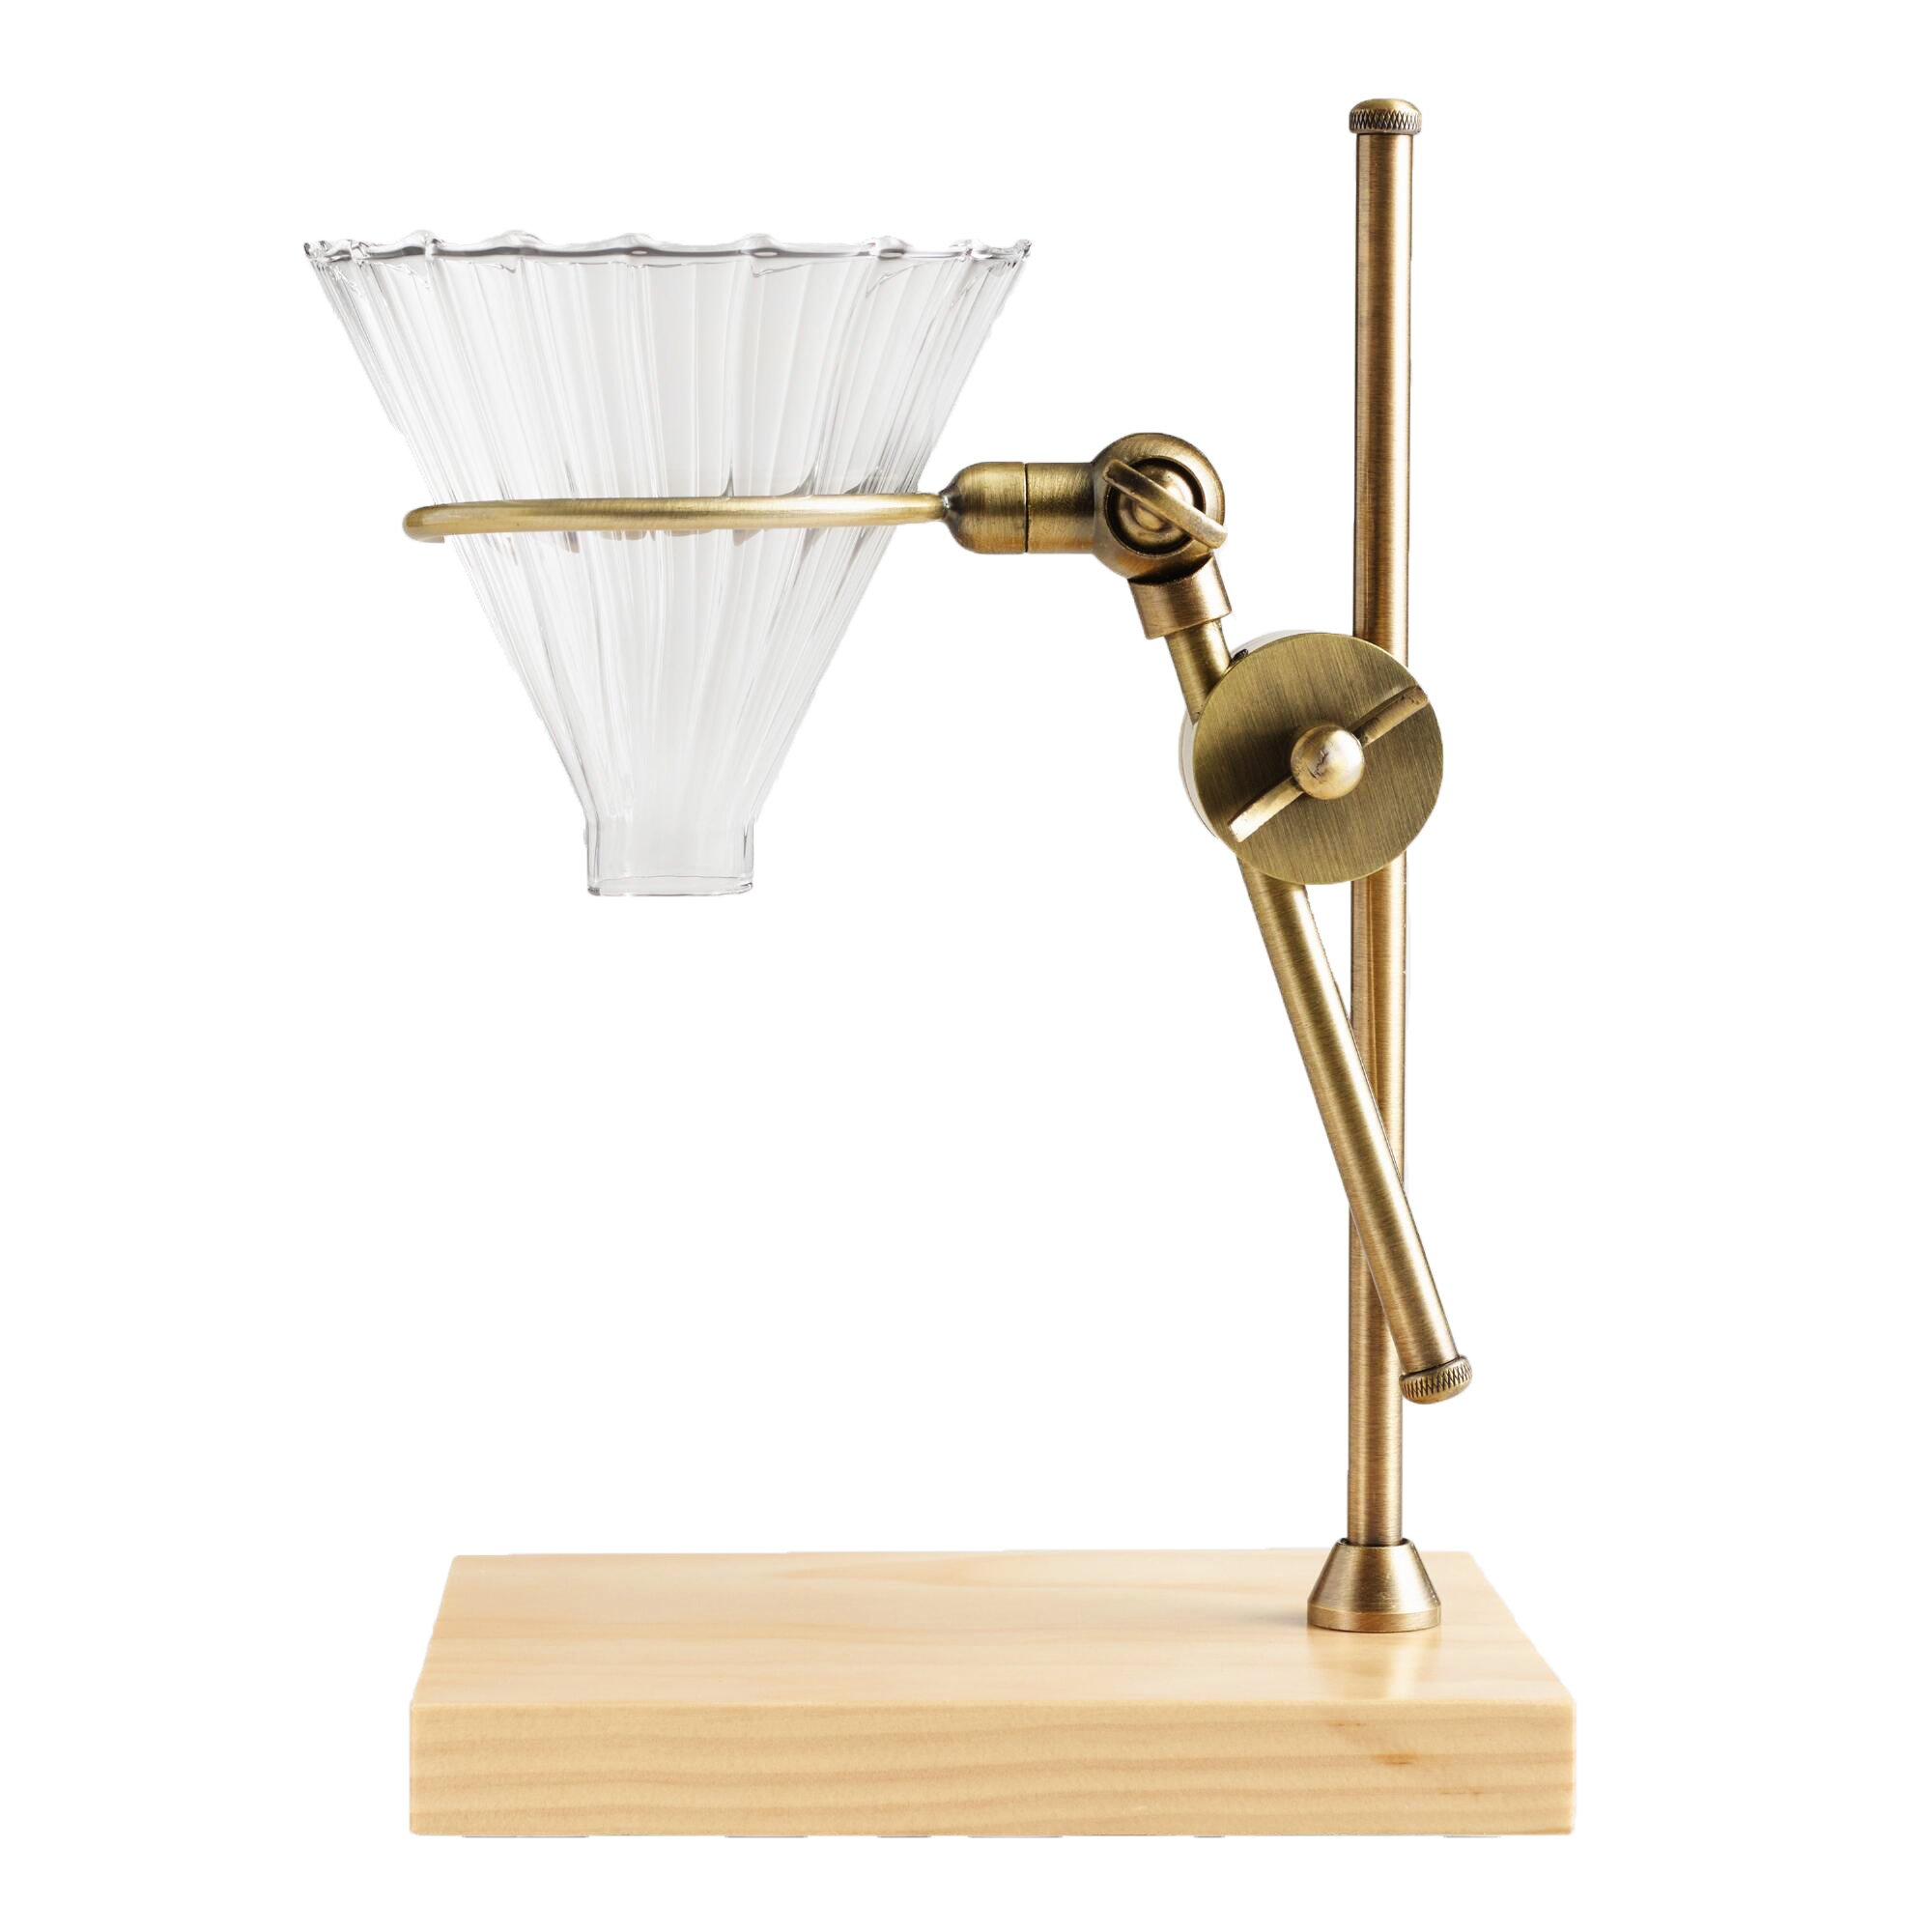 Brass Pour Over Coffee Dripper - with Wood Base Stand - Produces Flavorful Cups of Cafe Quality Coffee - Wonderful Presents for Coffee Connoisseurs, Coffee Lovers for Best Coffee Experience by WM